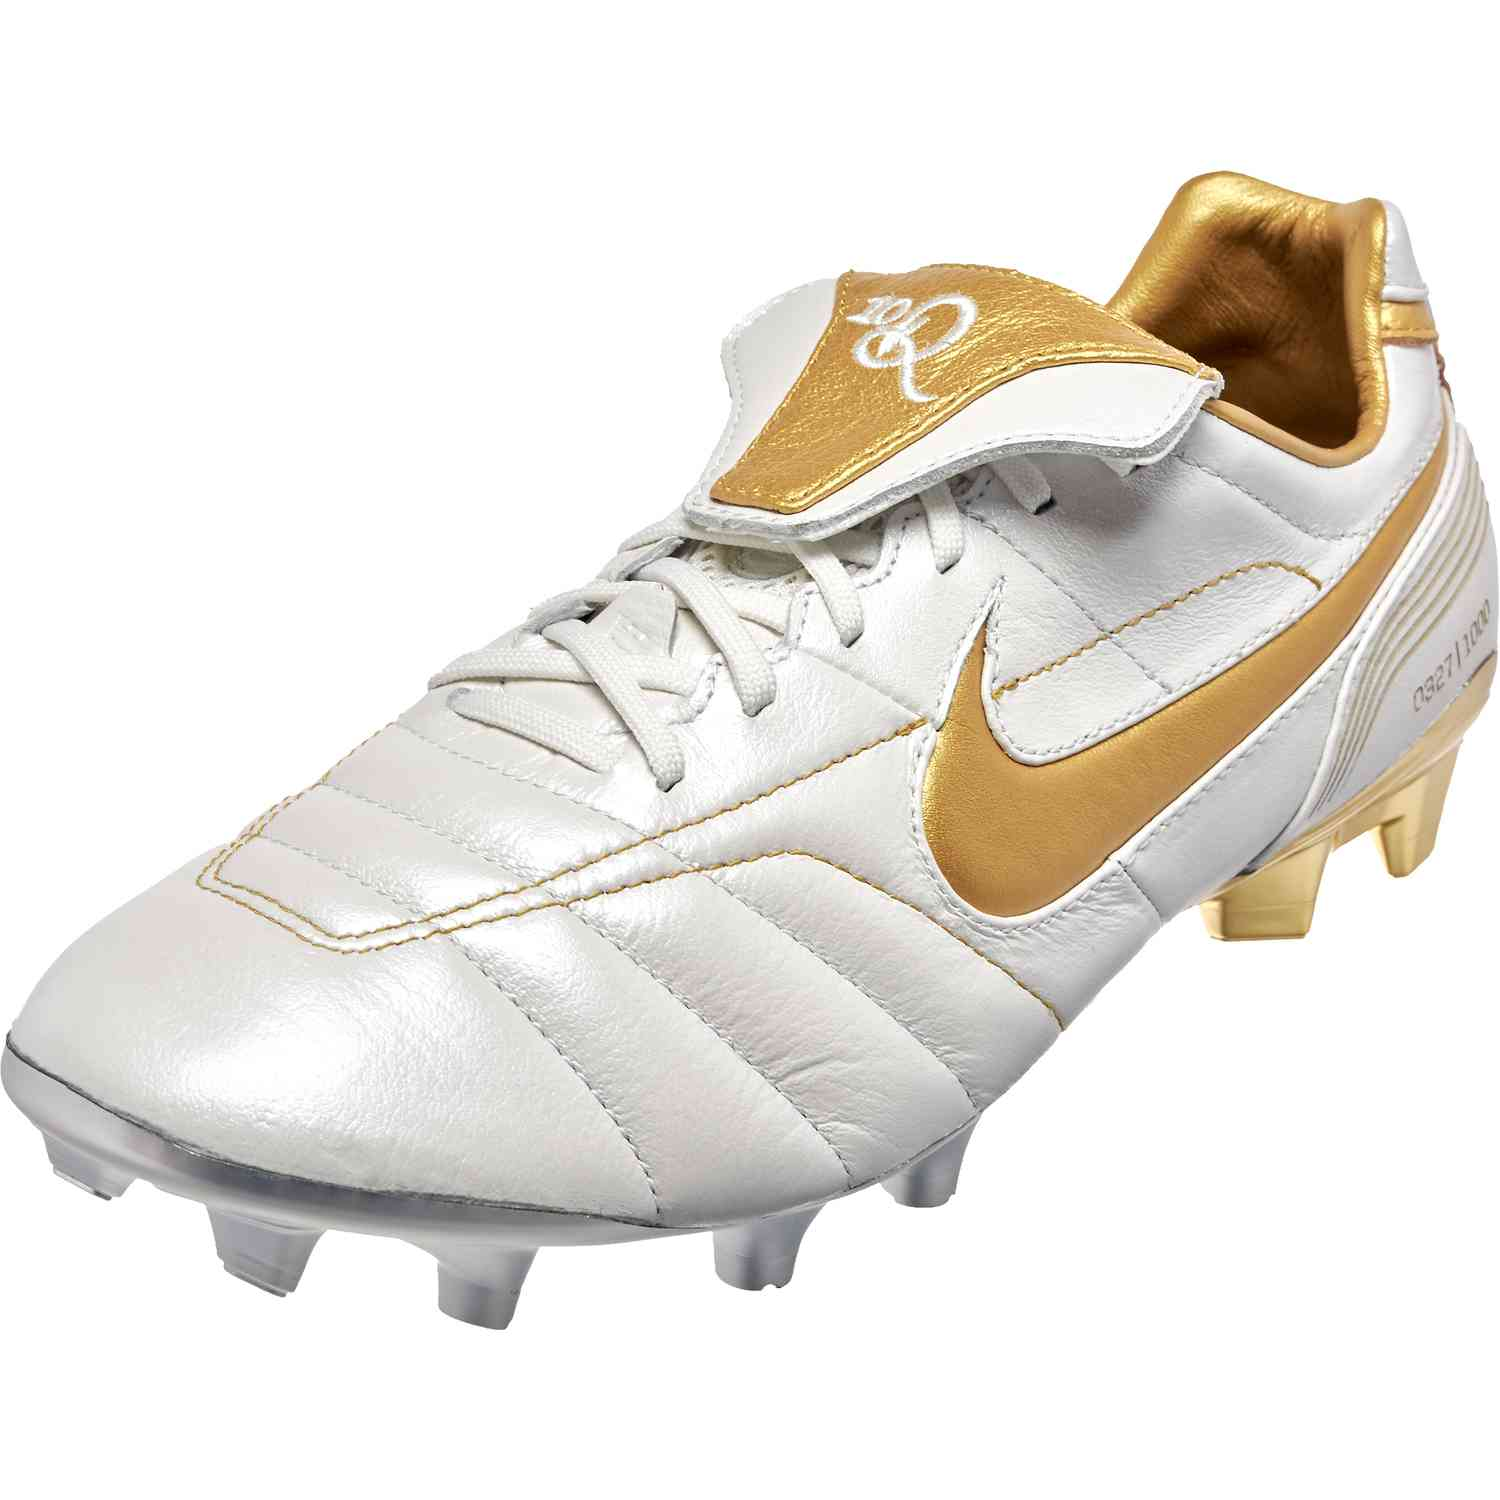 the latest 566d4 12641 Nike Tiempo Legend VII 10R - Ronaldinho edition - SoccerPro.com